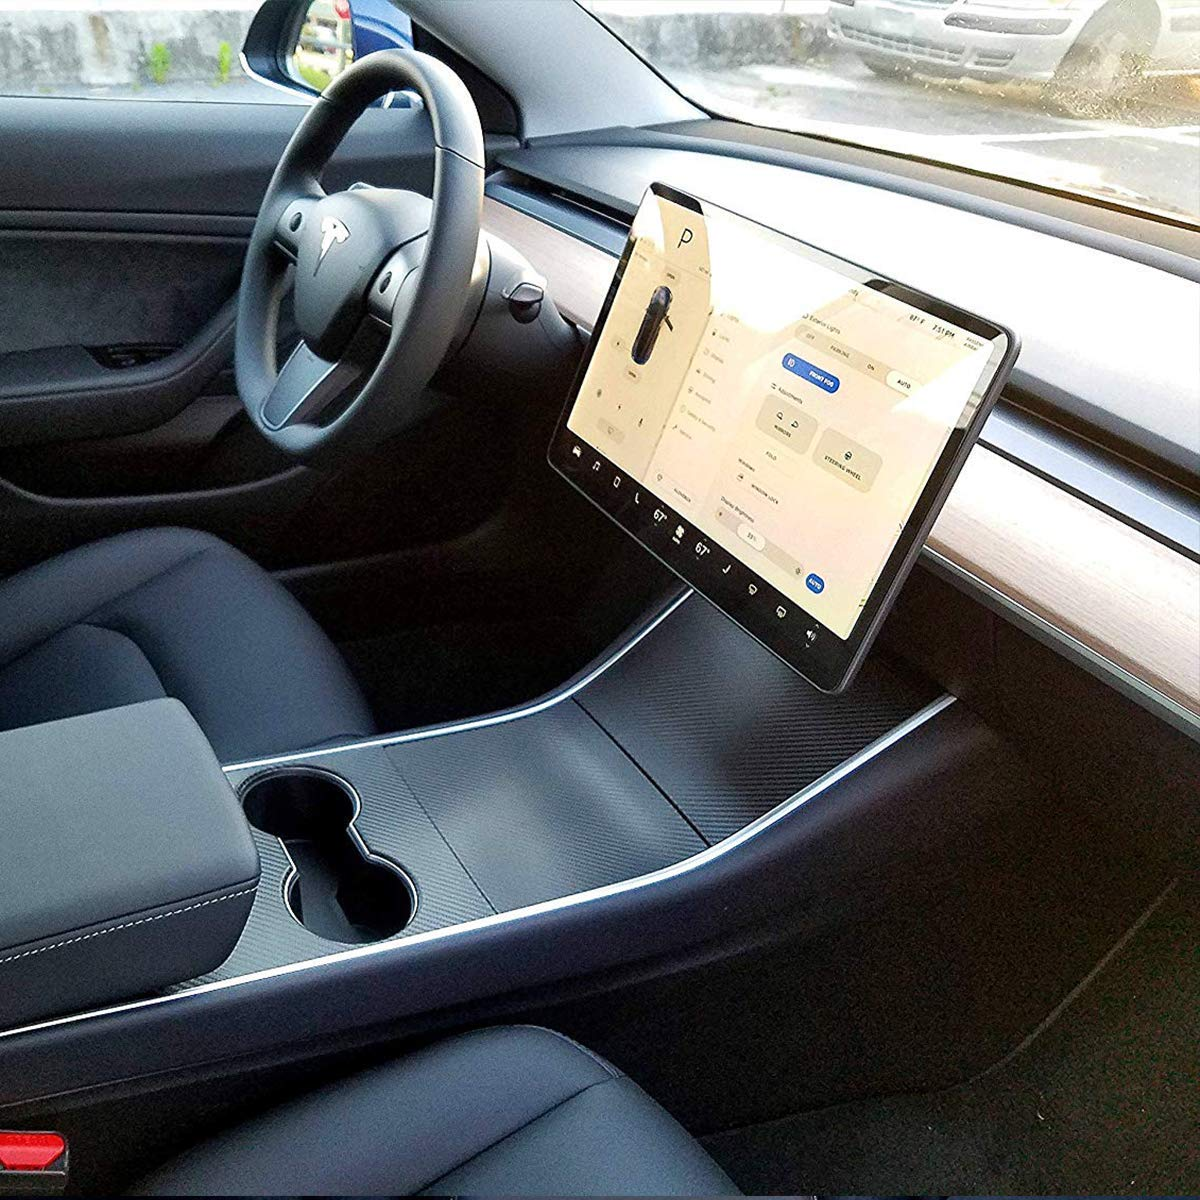 AHSN Tesla Model 3 Center Console Leather Wrap Kit Matte Black Leather Sticker for Tesla Model 3 Console Protector Accessories